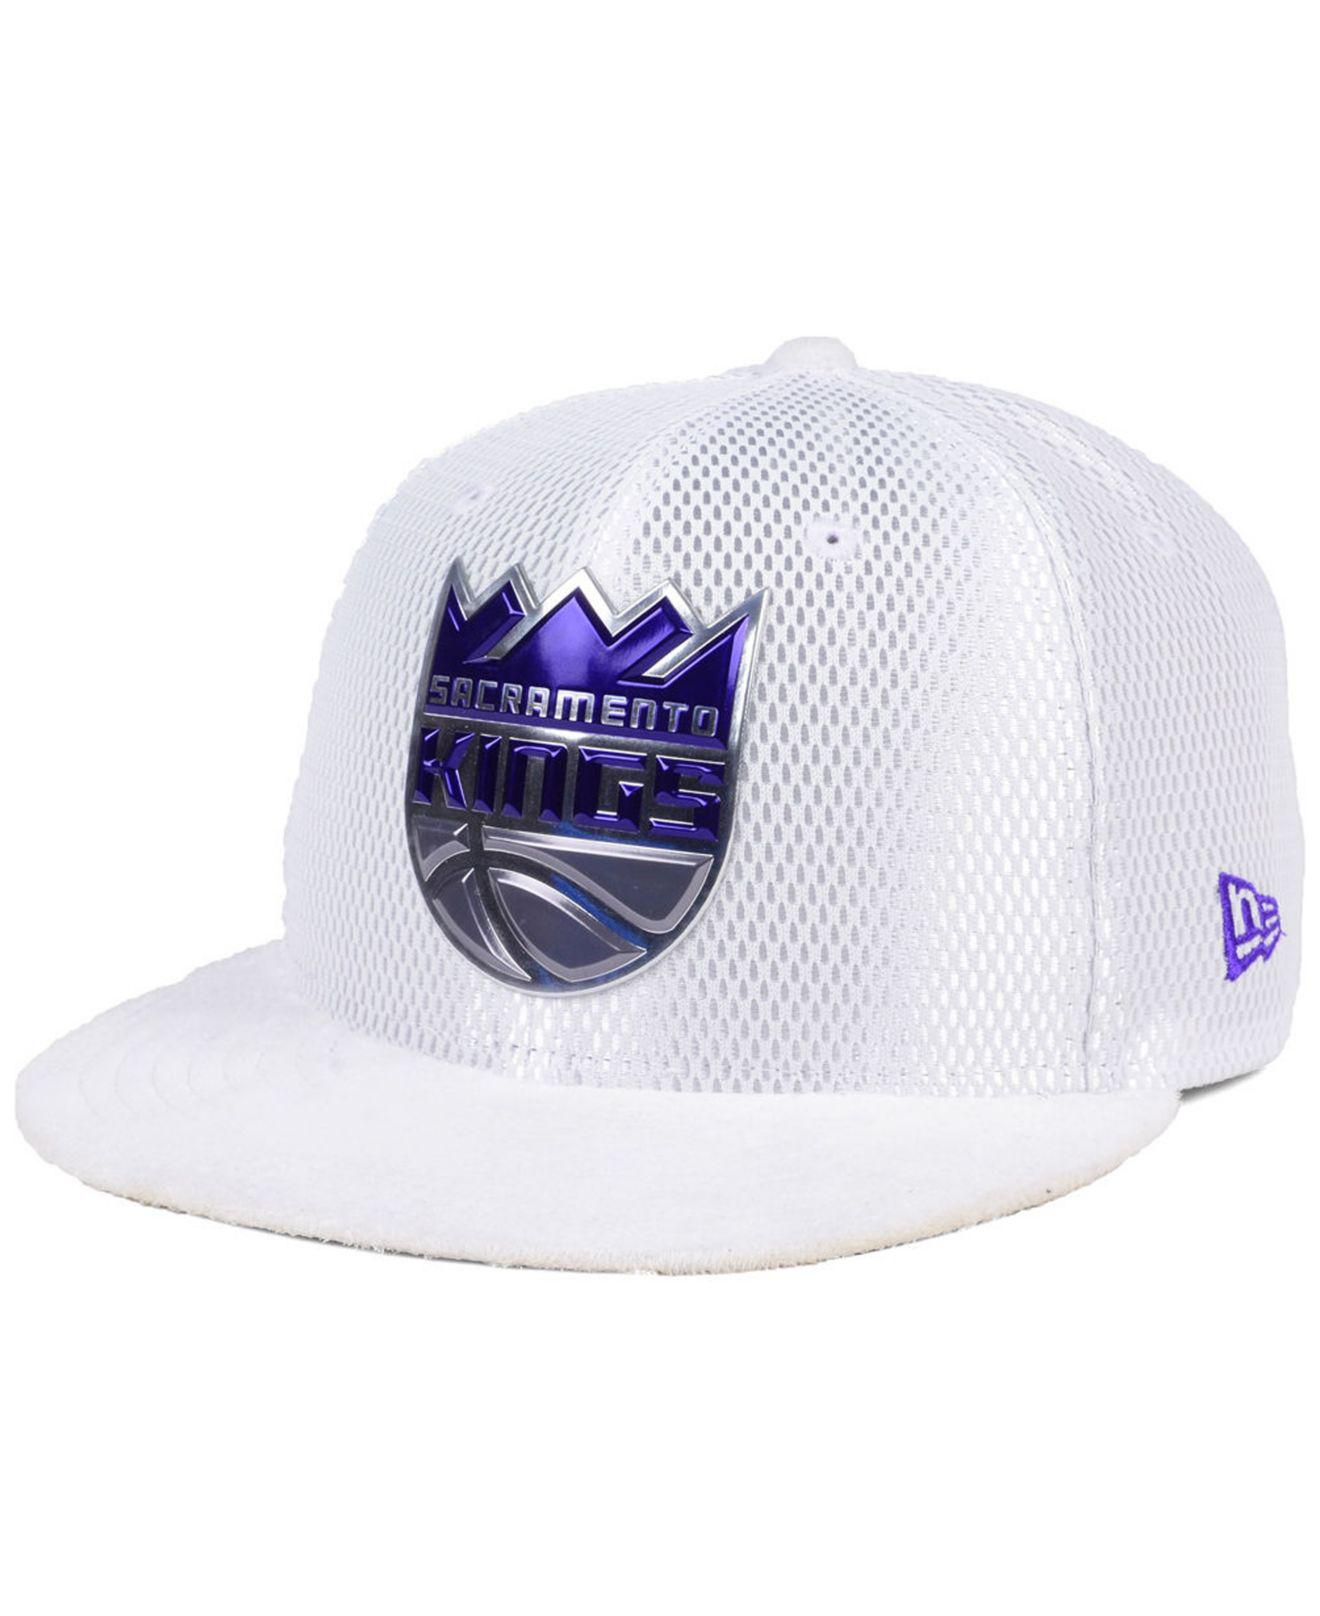 save off a1a40 e4bd3 Lyst - KTZ Sacramento Kings On-court Collection Draft 59fifty Fitted ...